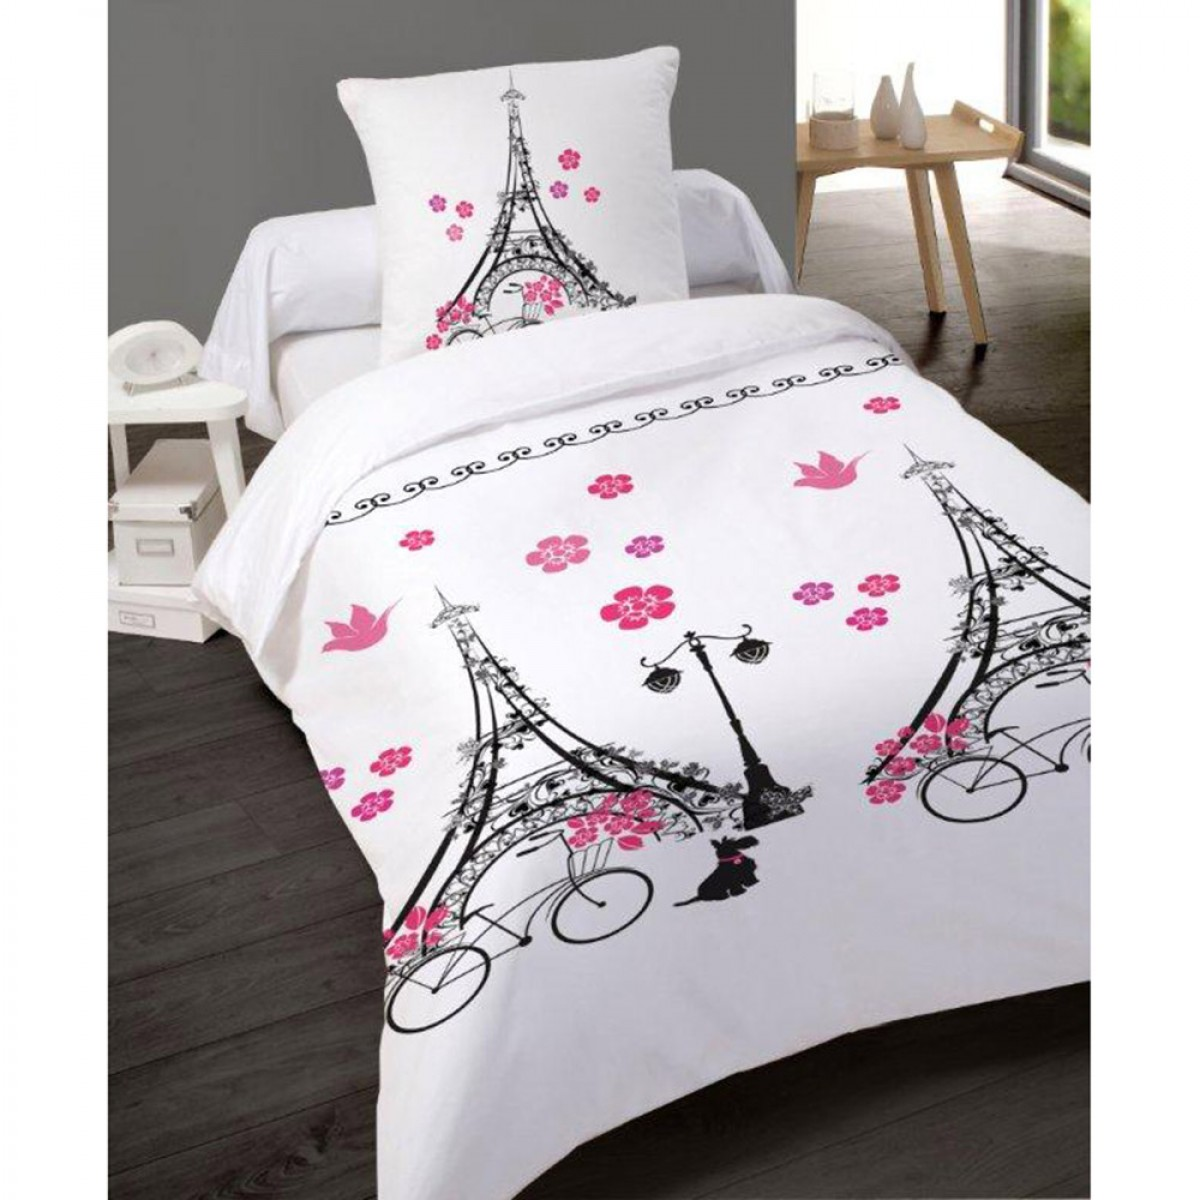 housse de couette 140x200 cm paris v lo en coton les douces nuits de ma linge de maison. Black Bedroom Furniture Sets. Home Design Ideas